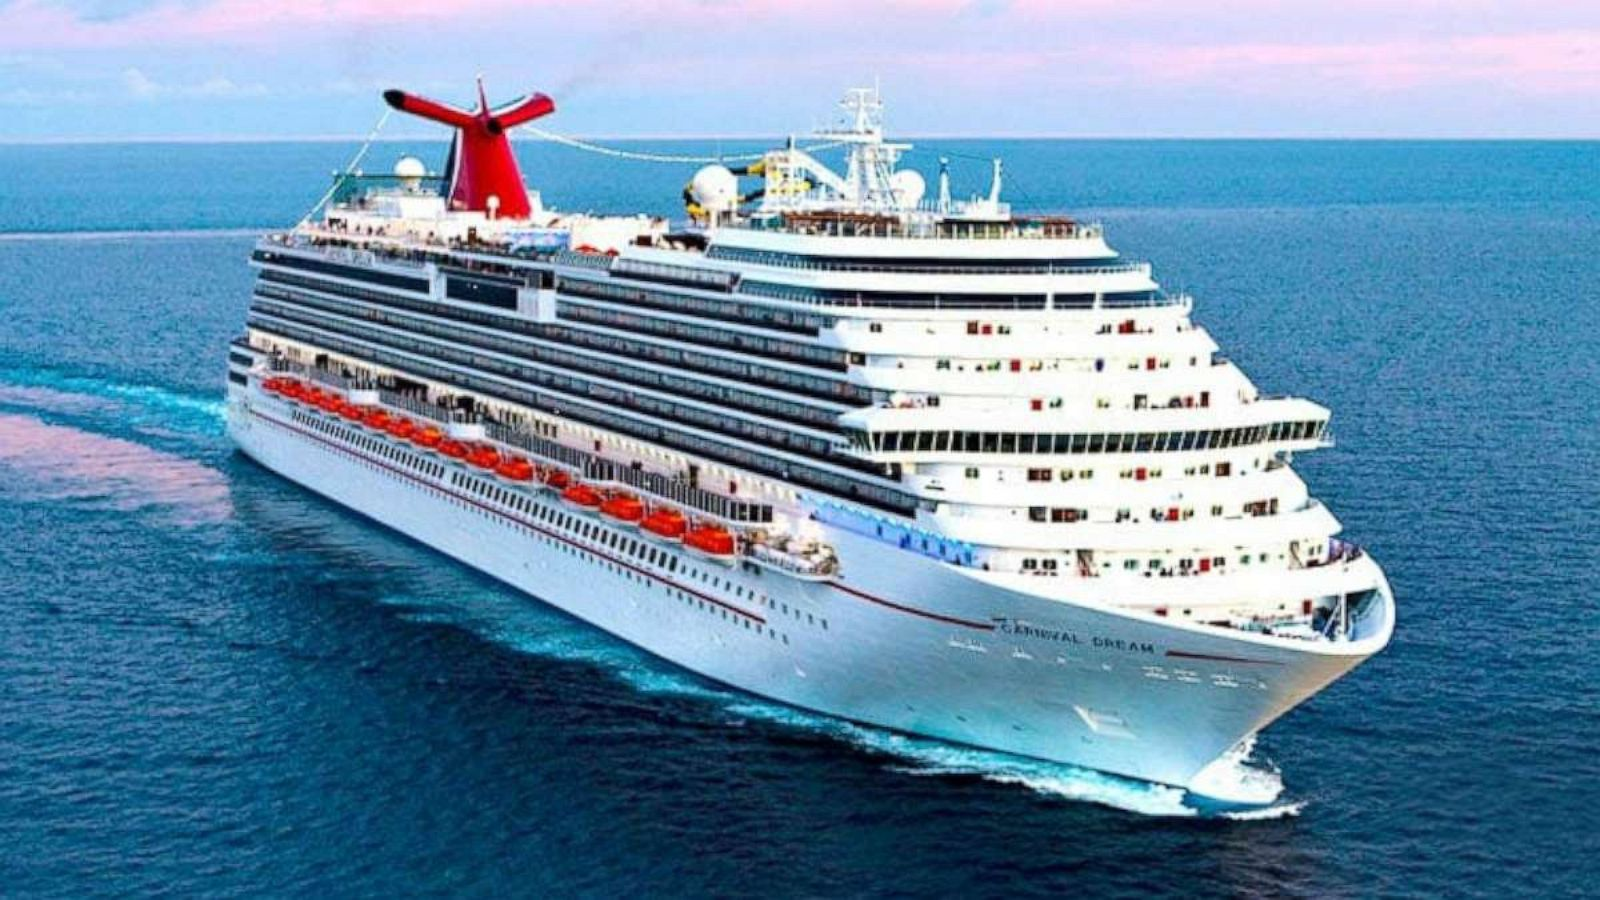 Download Carnival Breeze 2020 Cruises Background